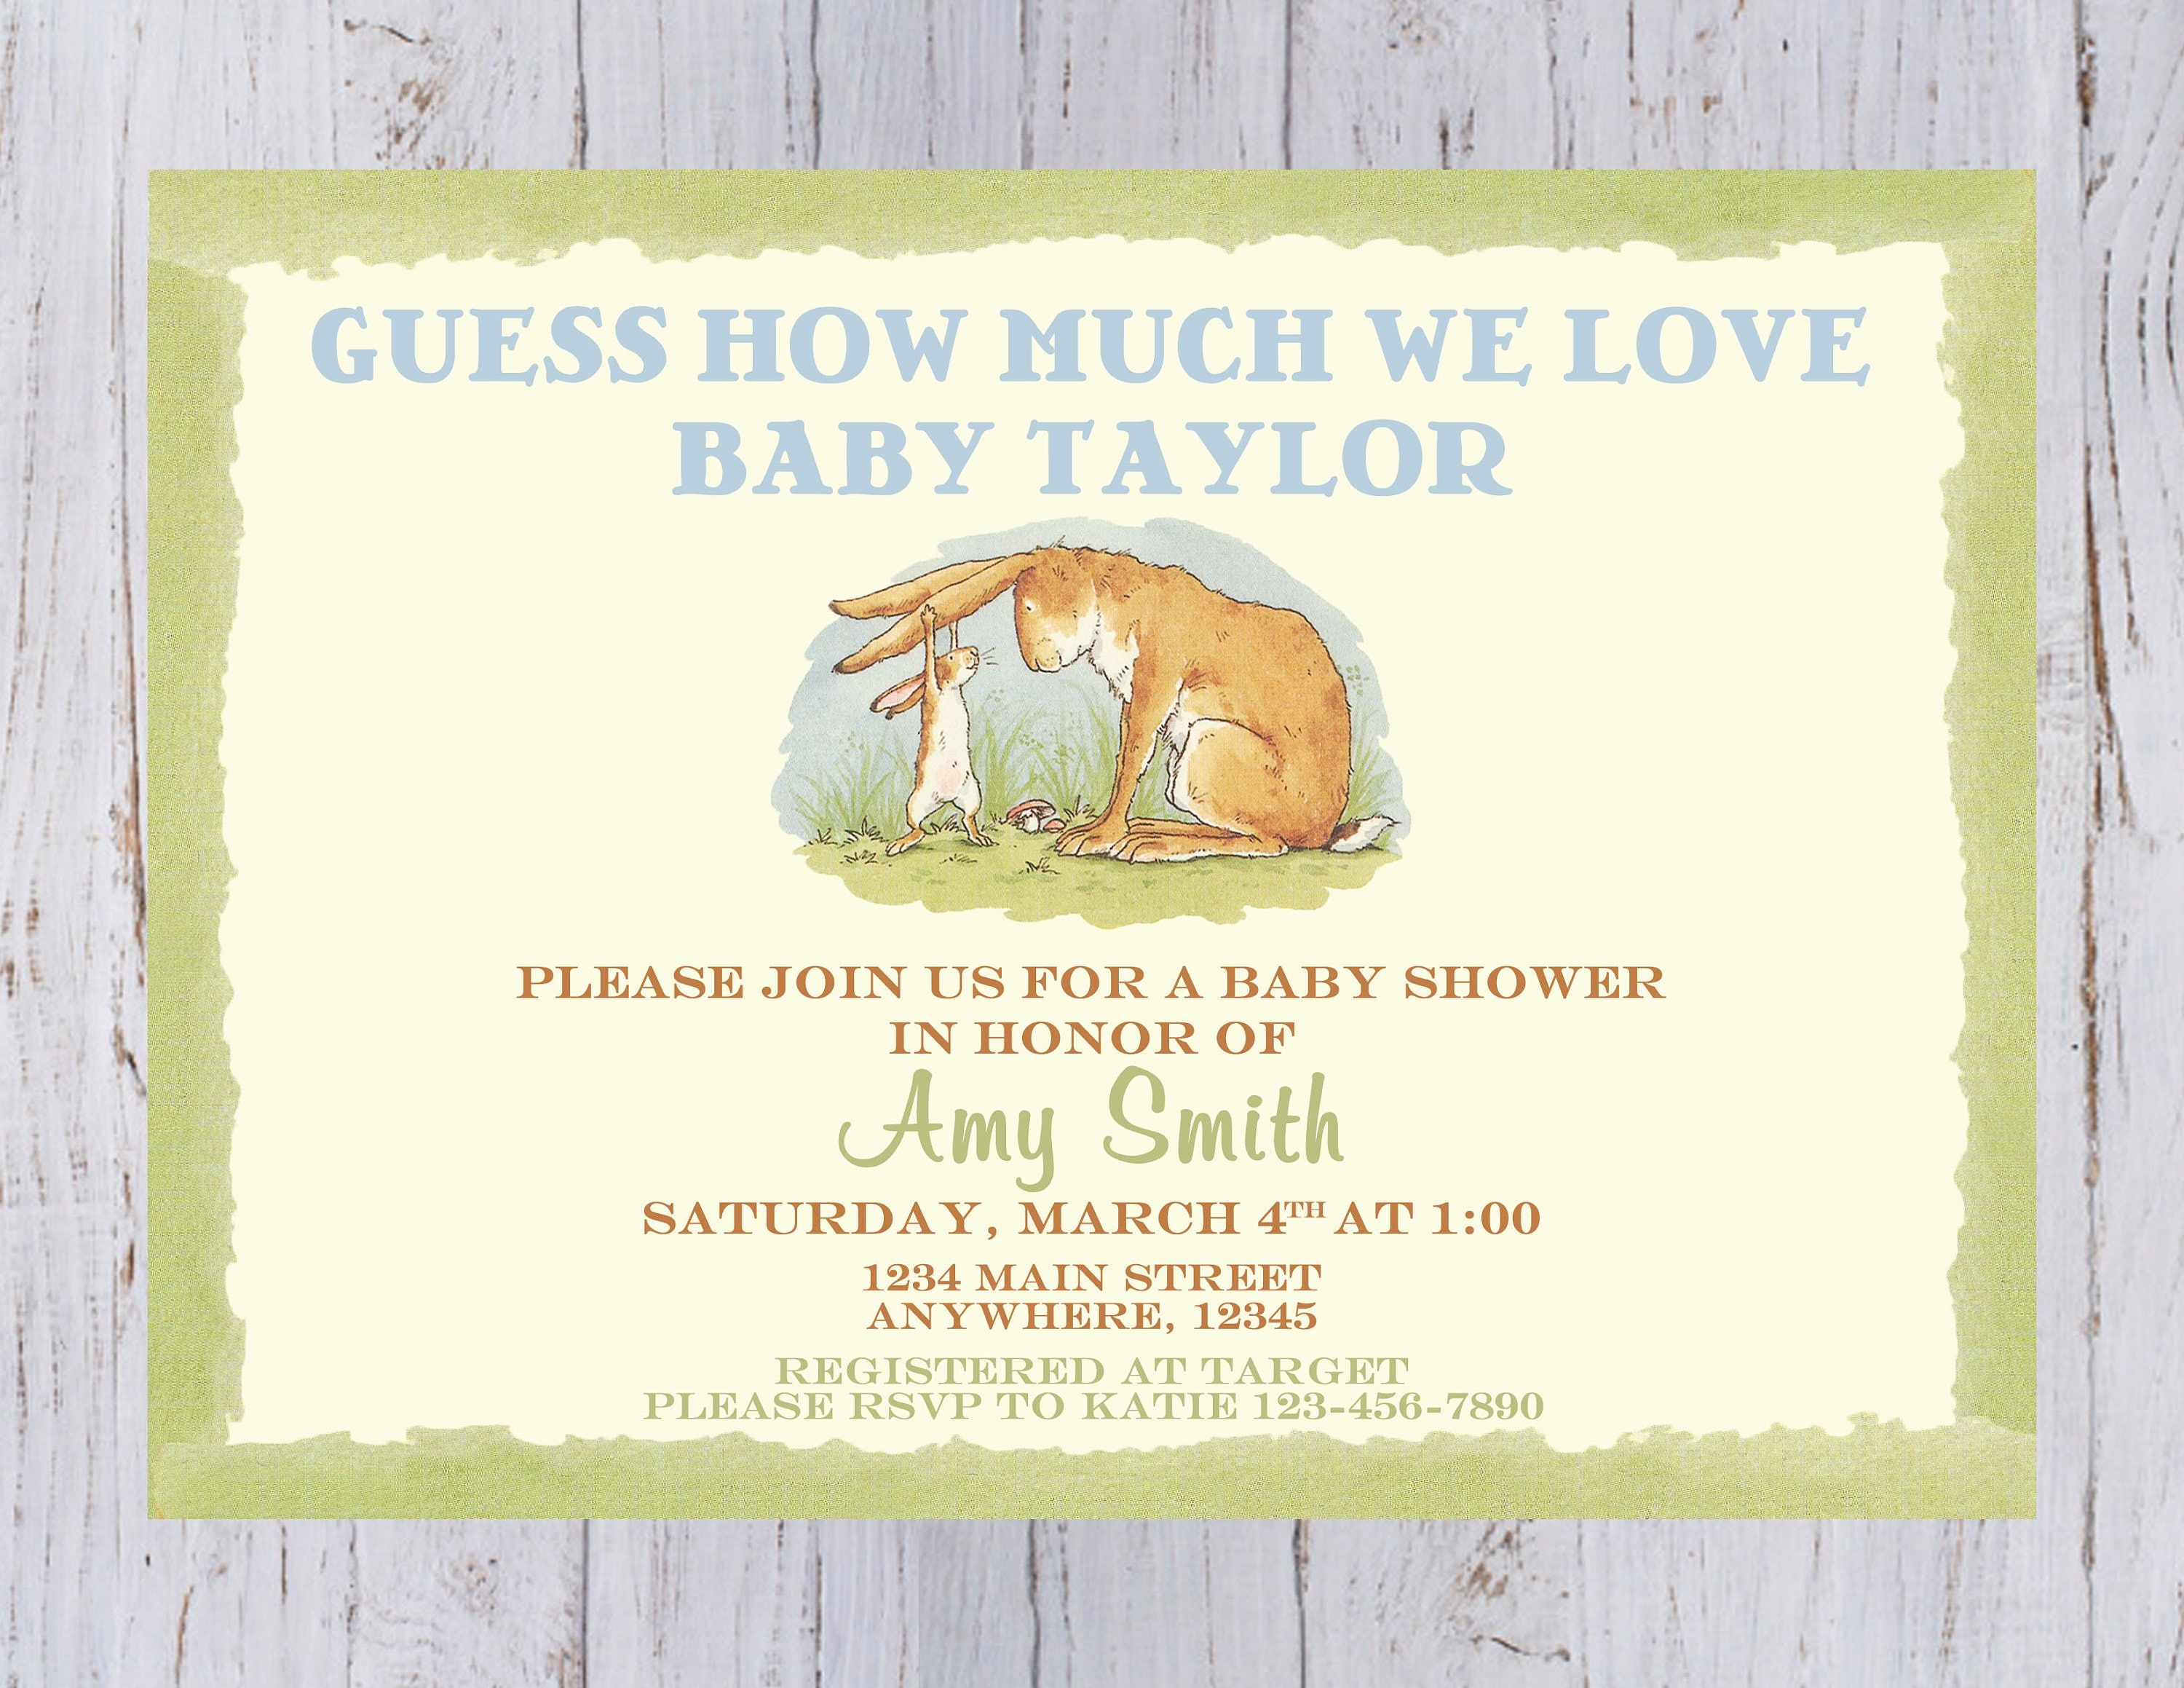 banner bunny baby shower invitations rustic roundedrectangle old girl floral themed spring gallery fashioned